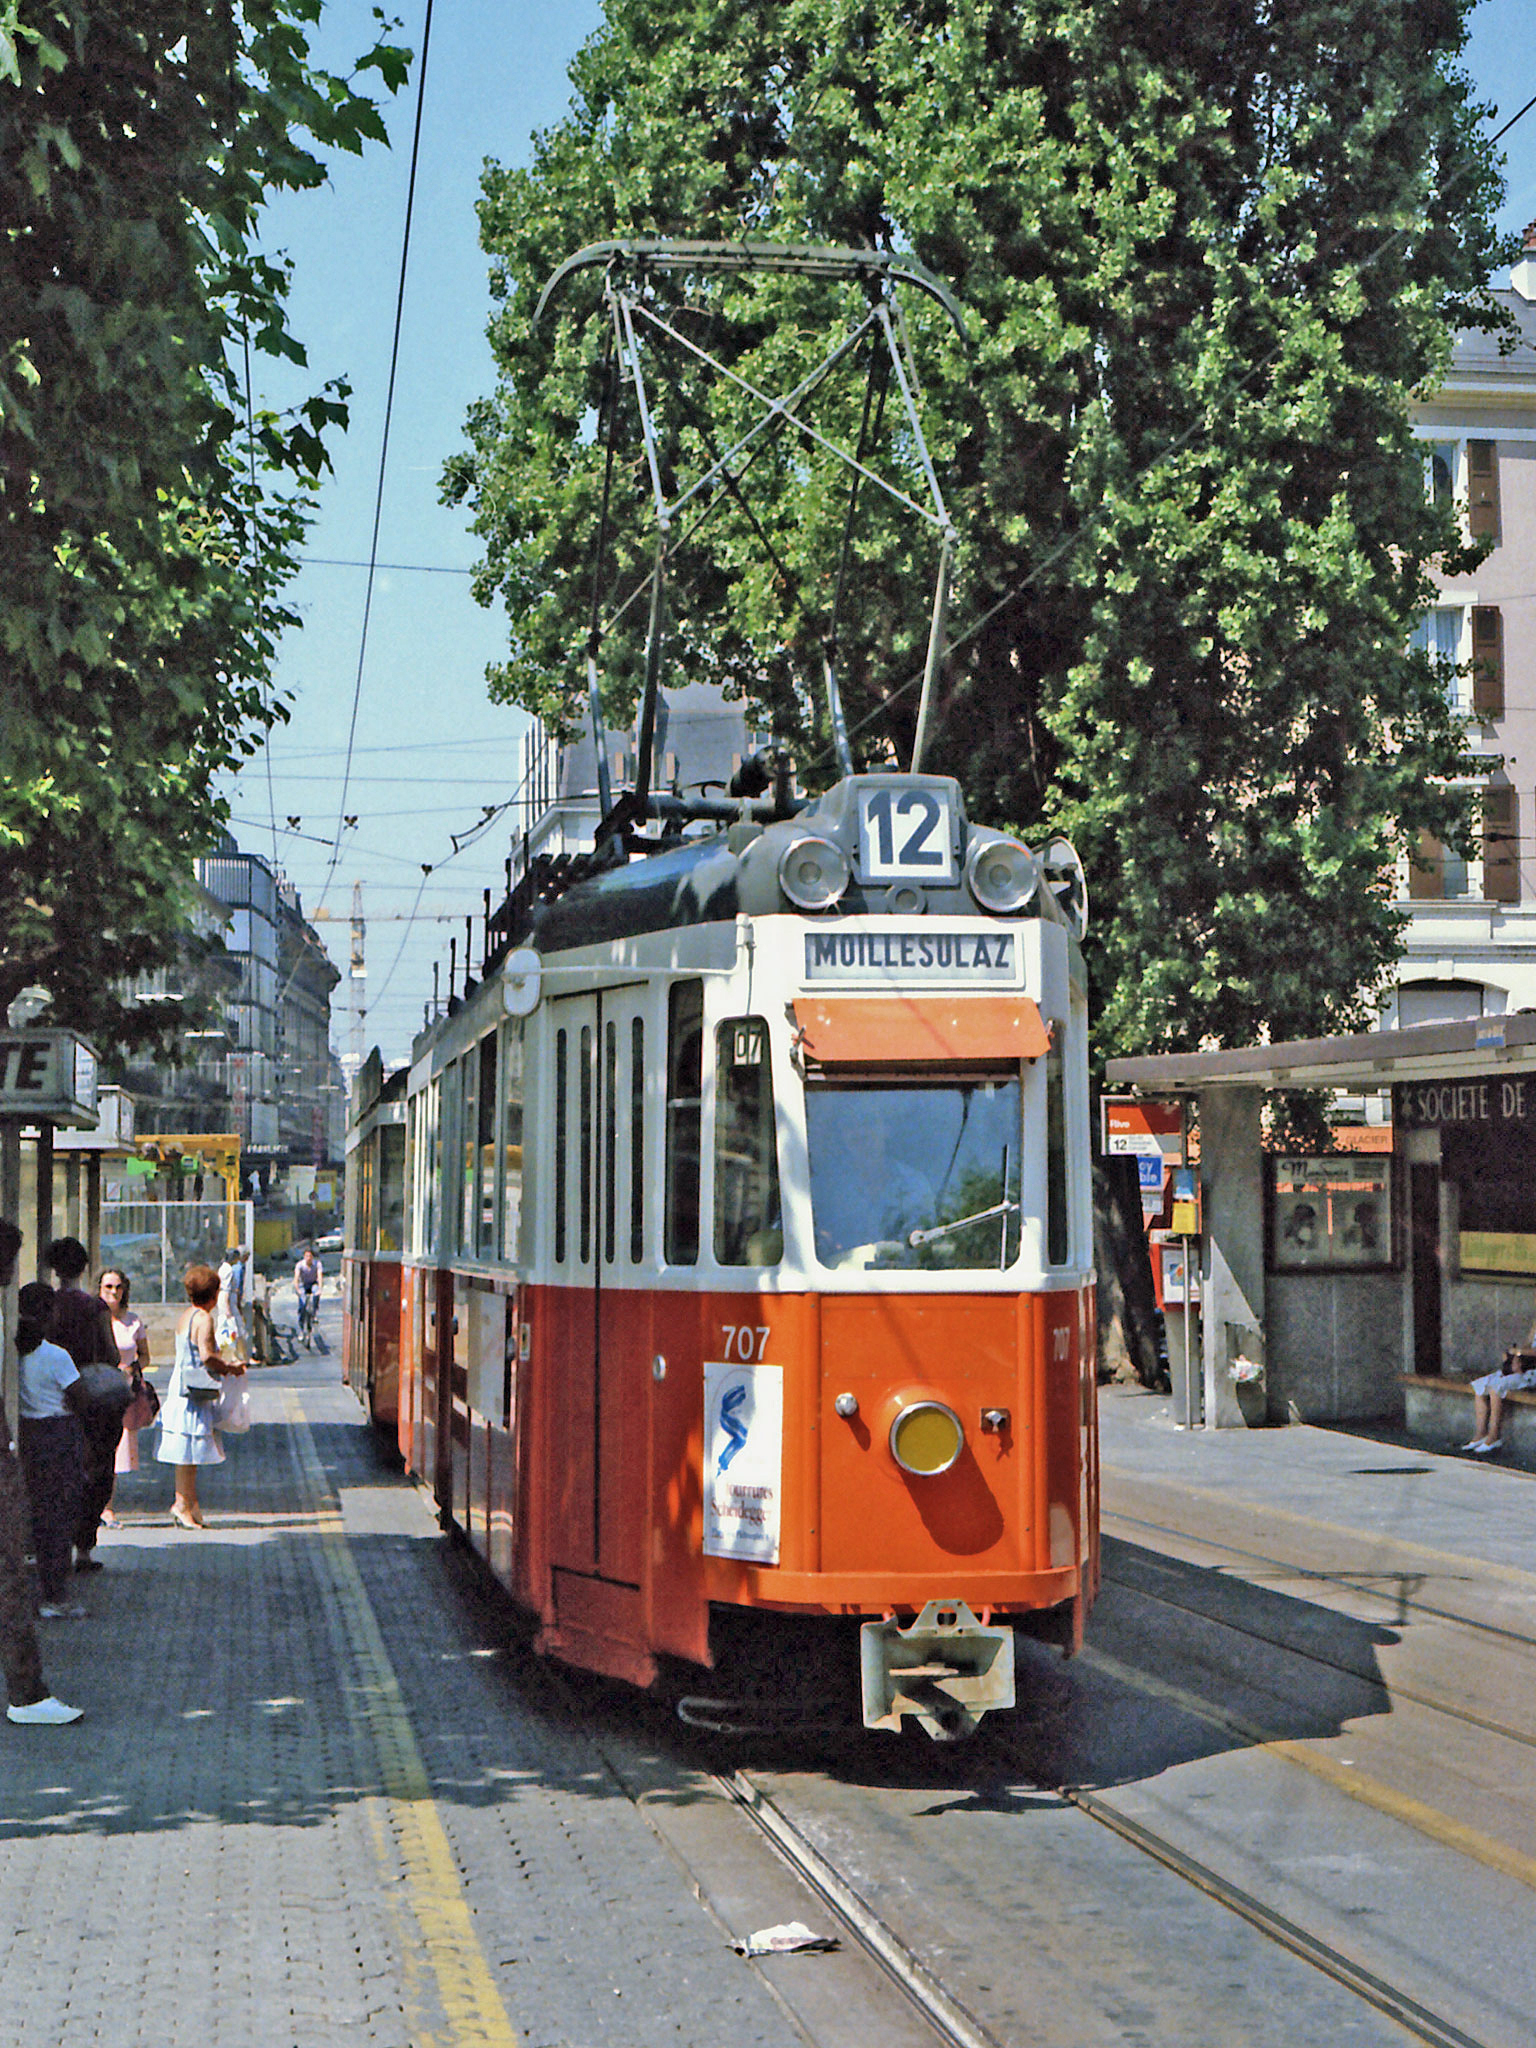 TPG - Geneva Trams, Trolleybuses and Motor Buses - www